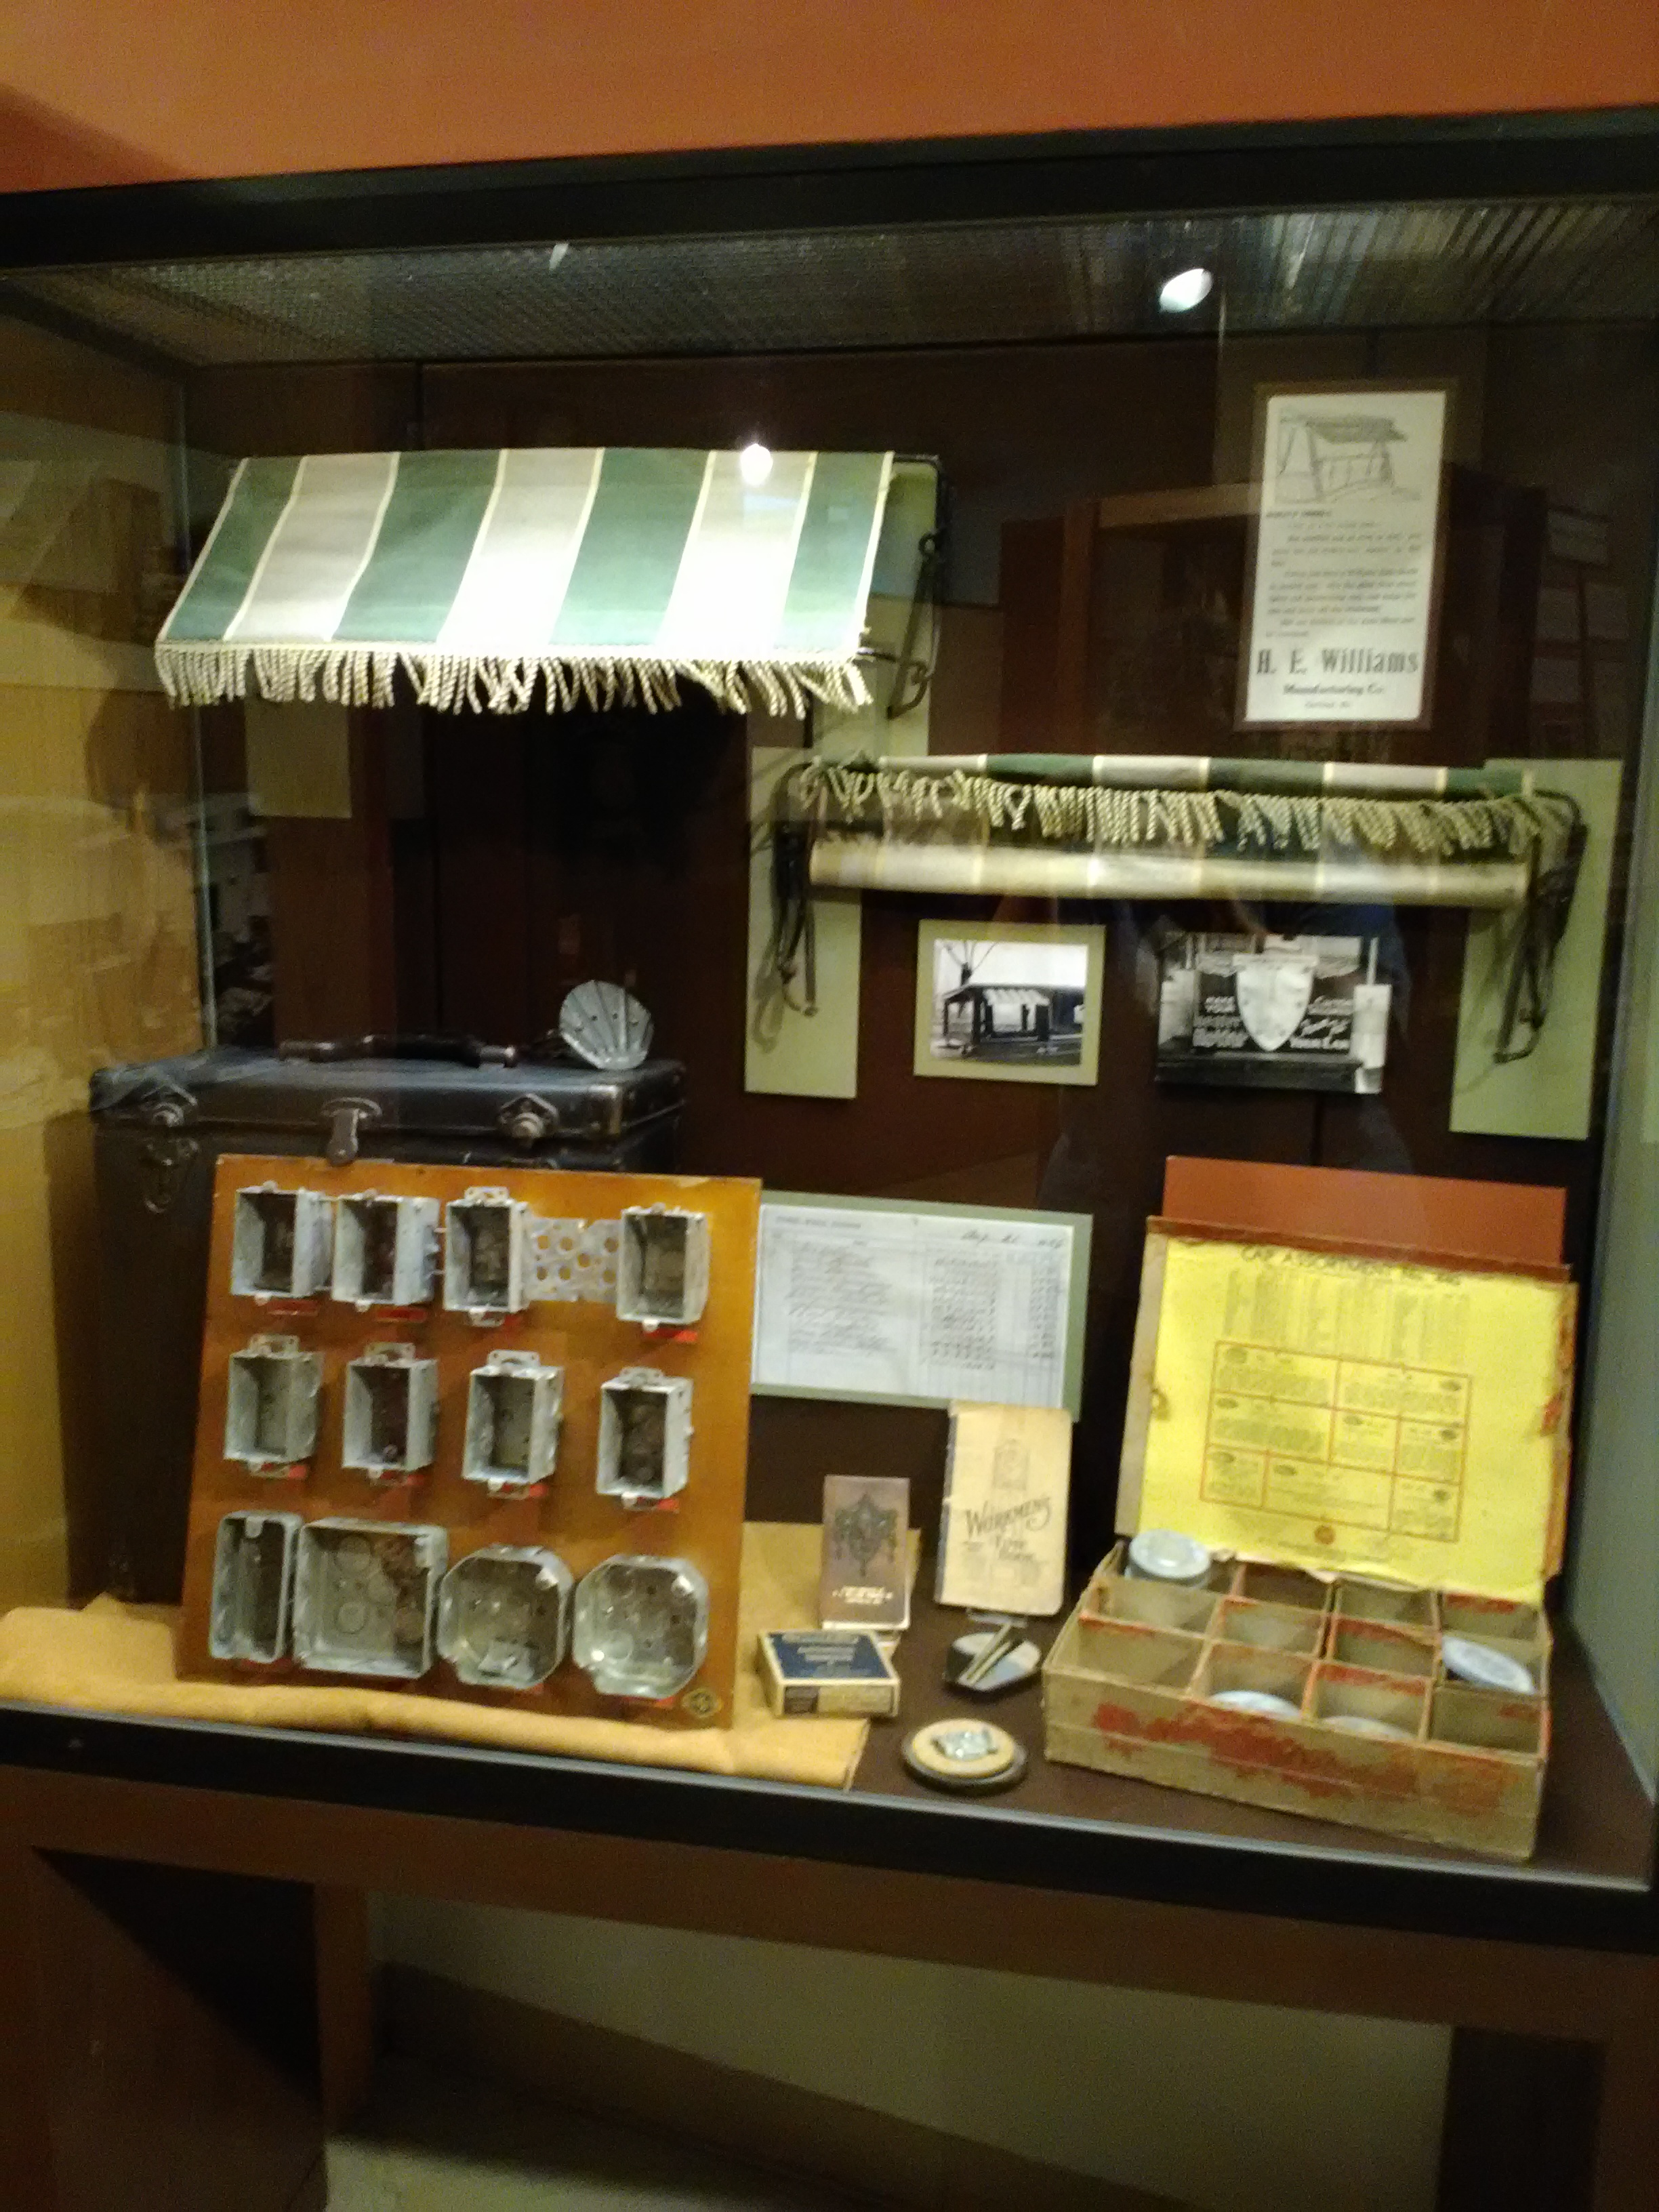 2017  Display on H. E. Williams, Inc., showing early auto and lighting products made during 1920s-1940s. H. E. Williams, Inc., was the museum's 2017 Exhibit Gallery Sponsor.